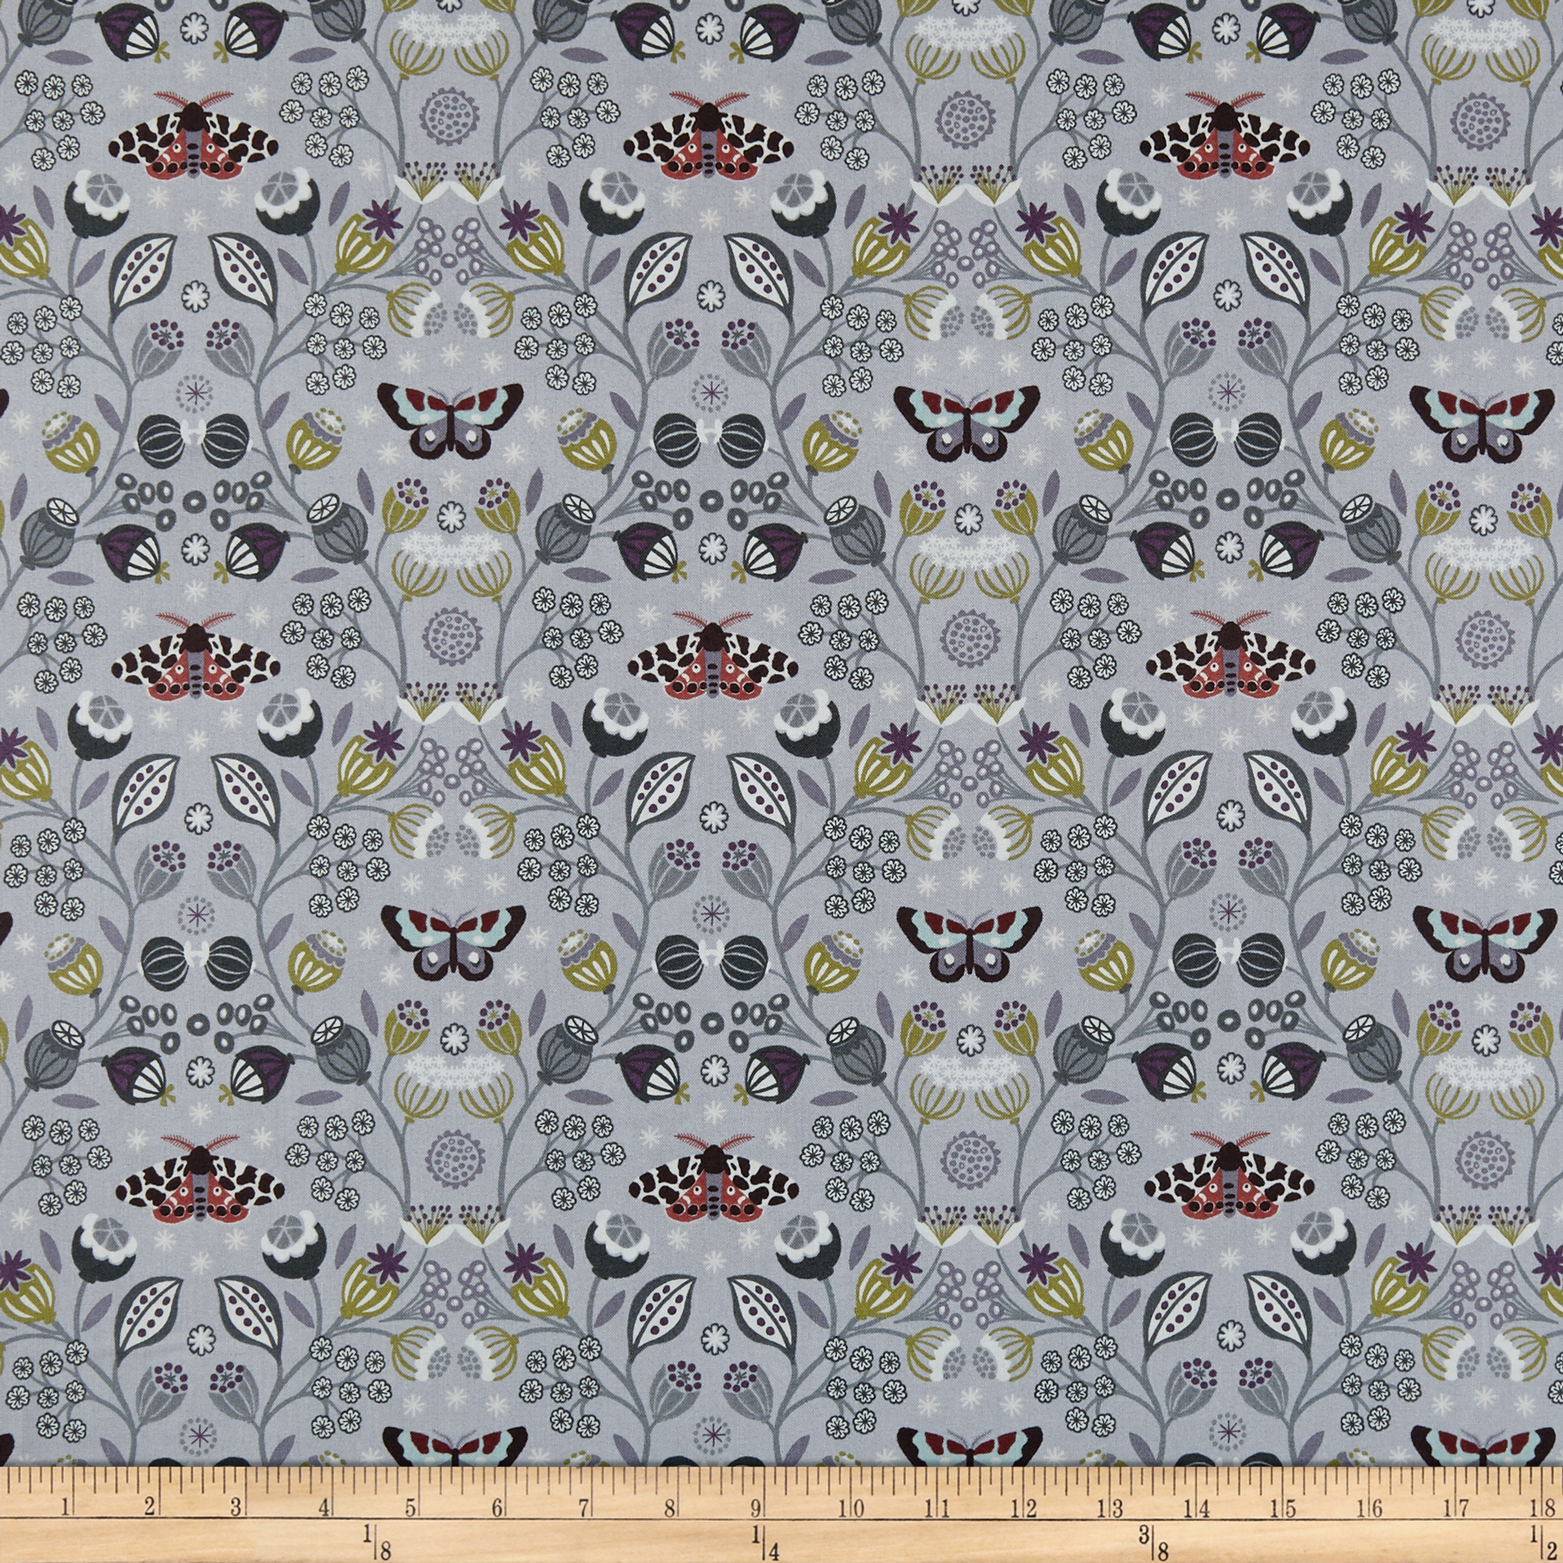 INOpets.com Anything for Pets Parents & Their Pets Lewis & Irene Winter Garden Winter Garden Grey Fabric